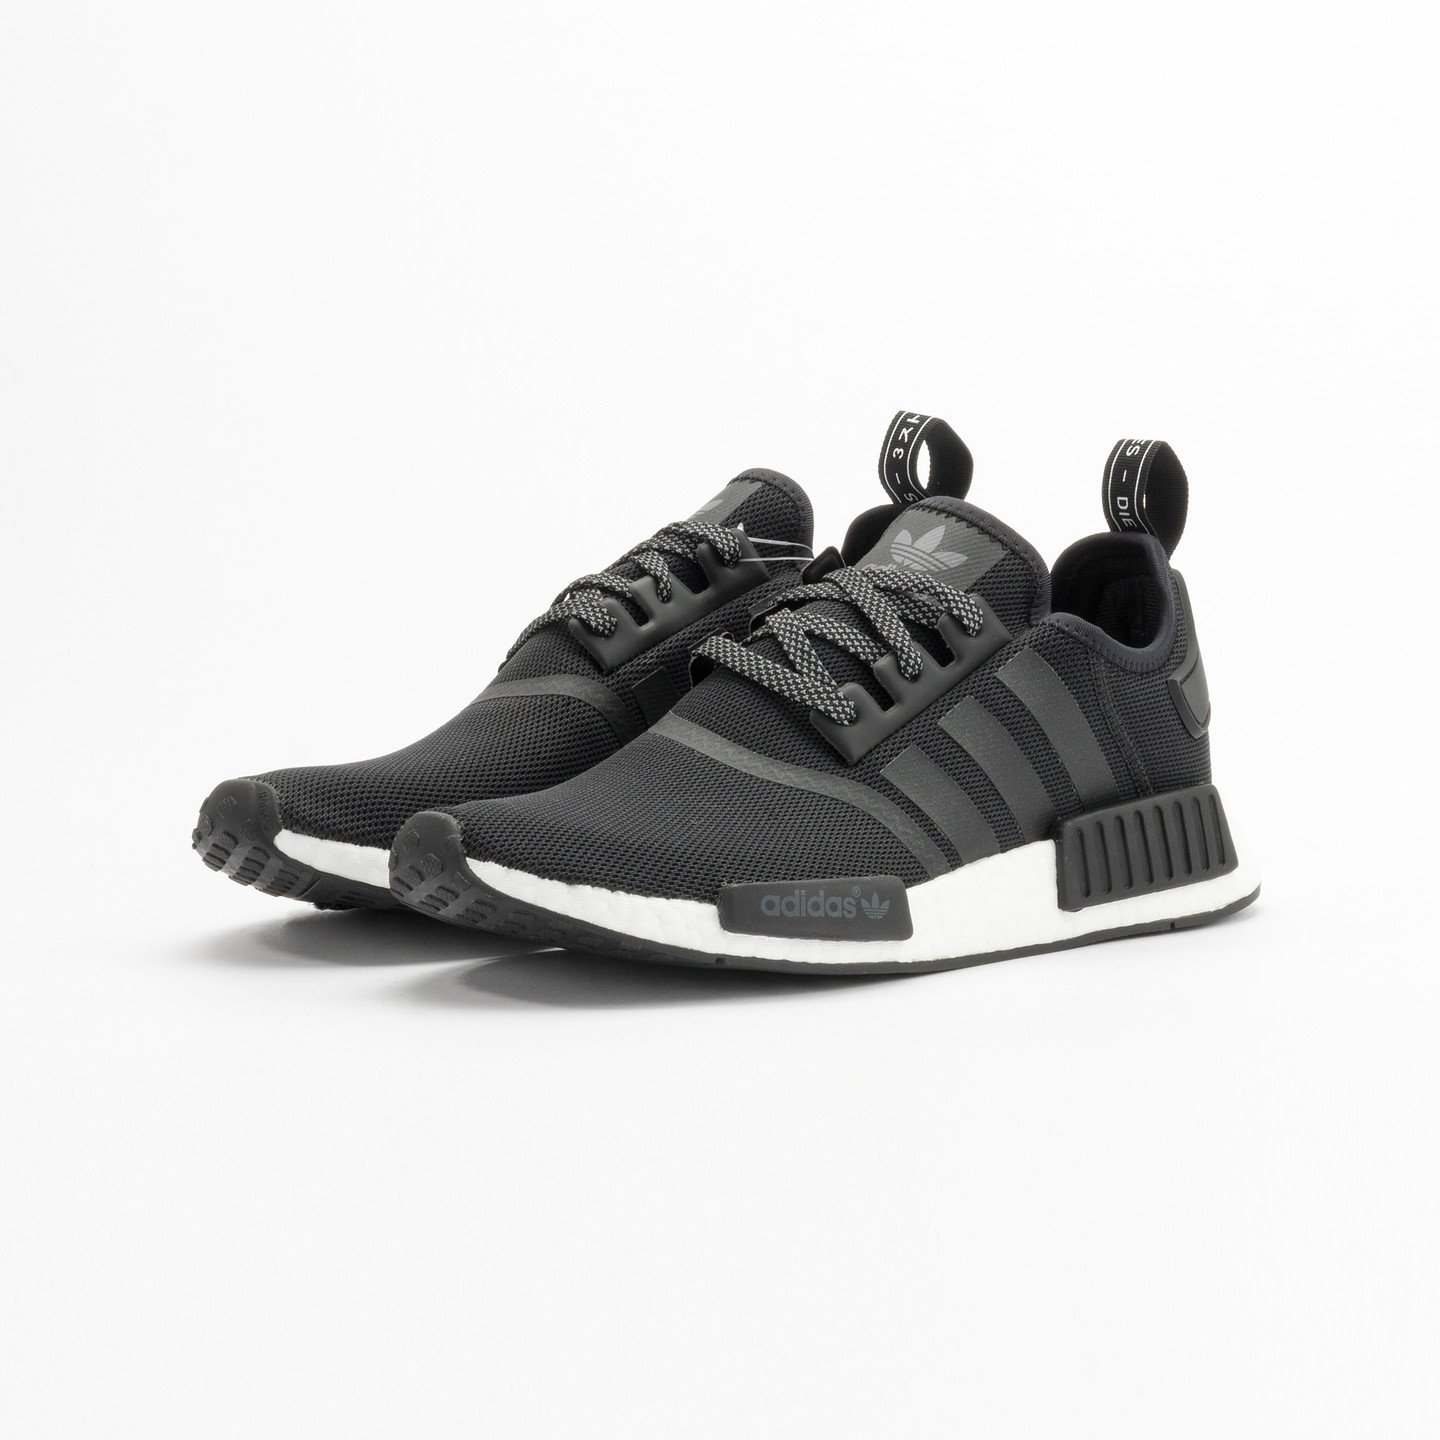 Adidas NMD R1 Runner Core Black Reflective / Ftwr White S31505-43.33